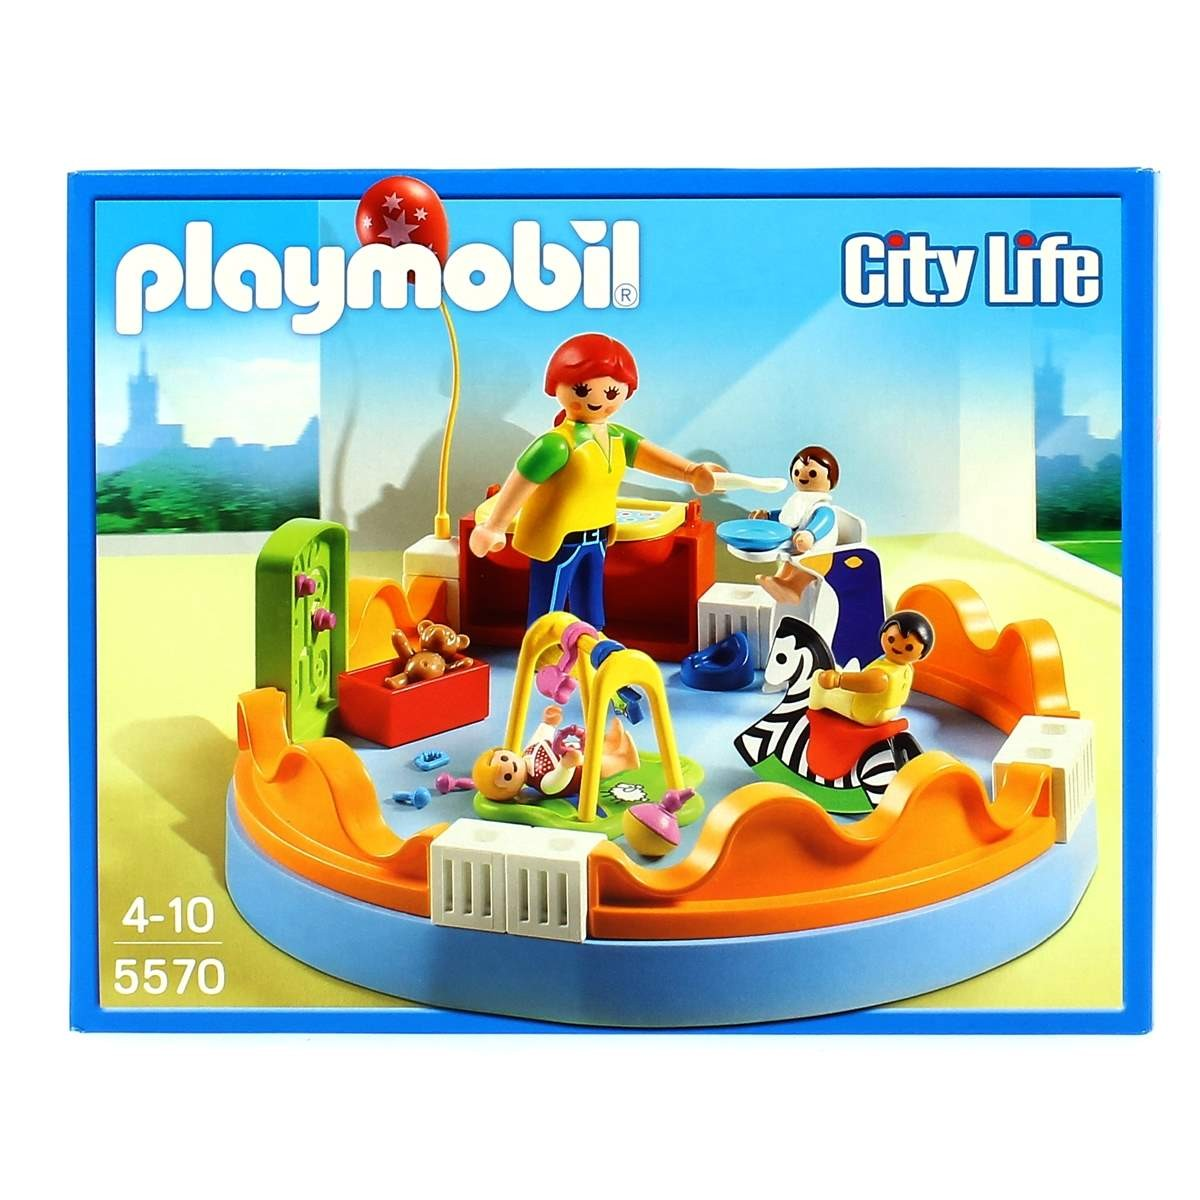 Playmobil city life quarto